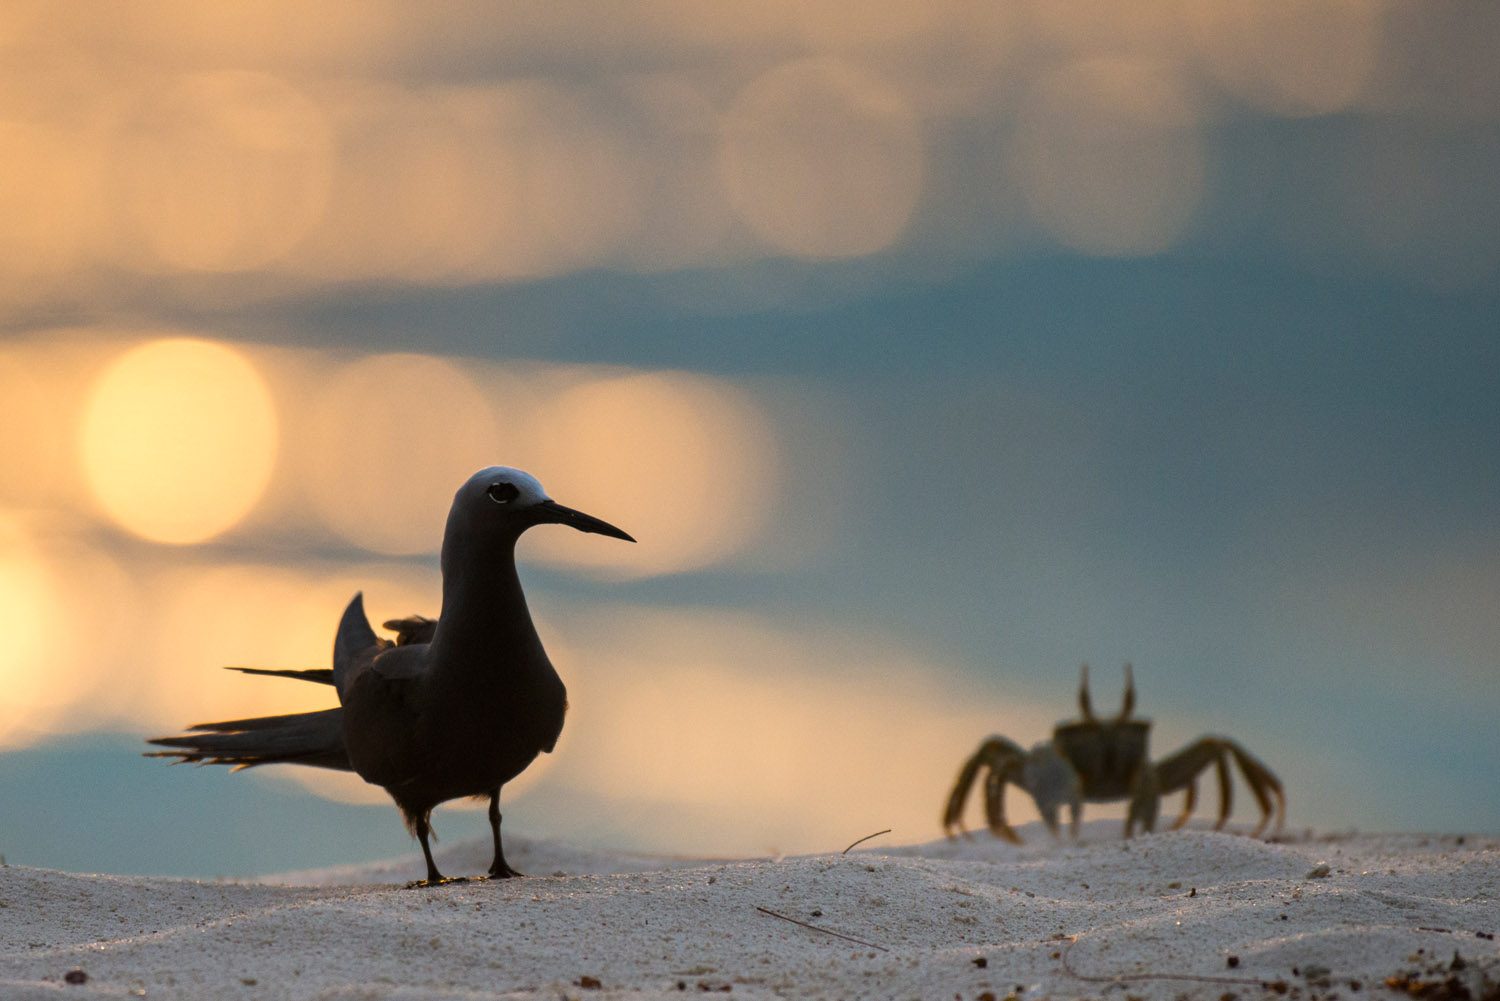 Lesser noddy and horned ghost crab on beach at sunset, Cousin Island Special Reserve, Seychelles